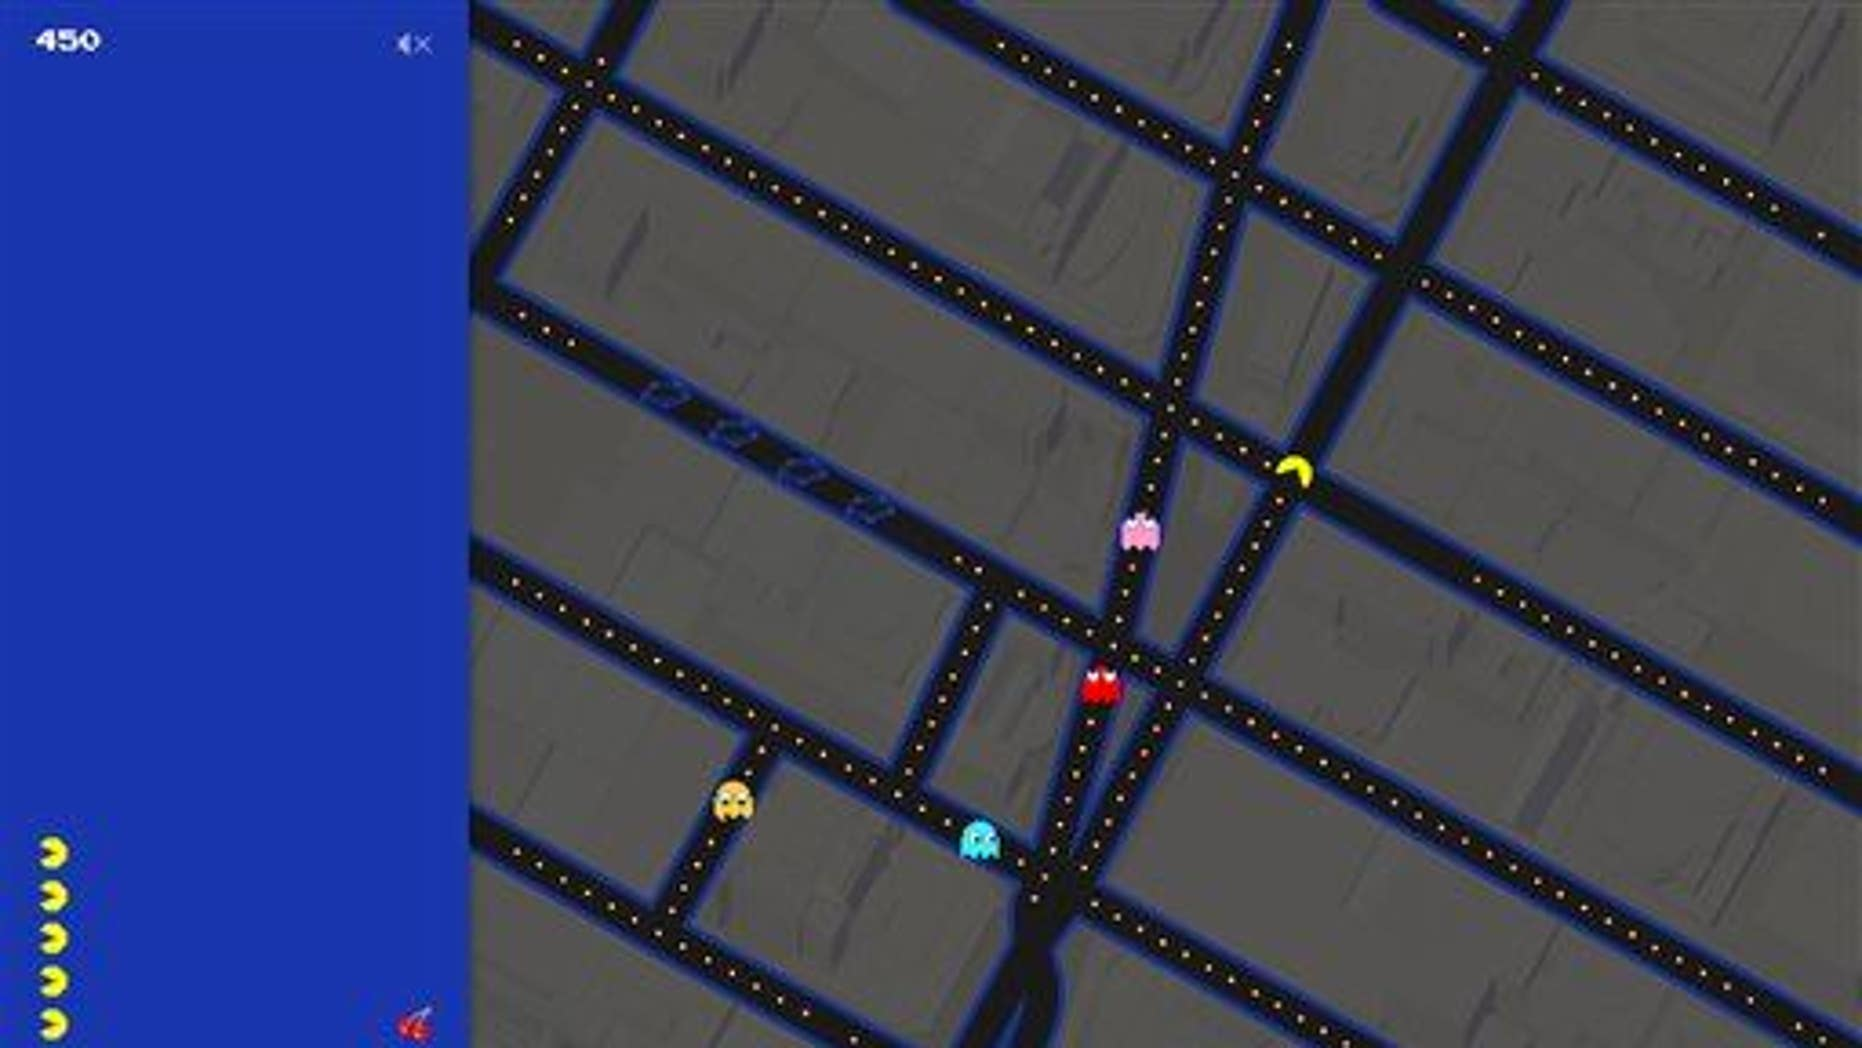 This screenshot shows the Times Square area of New York in Pac-Man form on Google Maps.